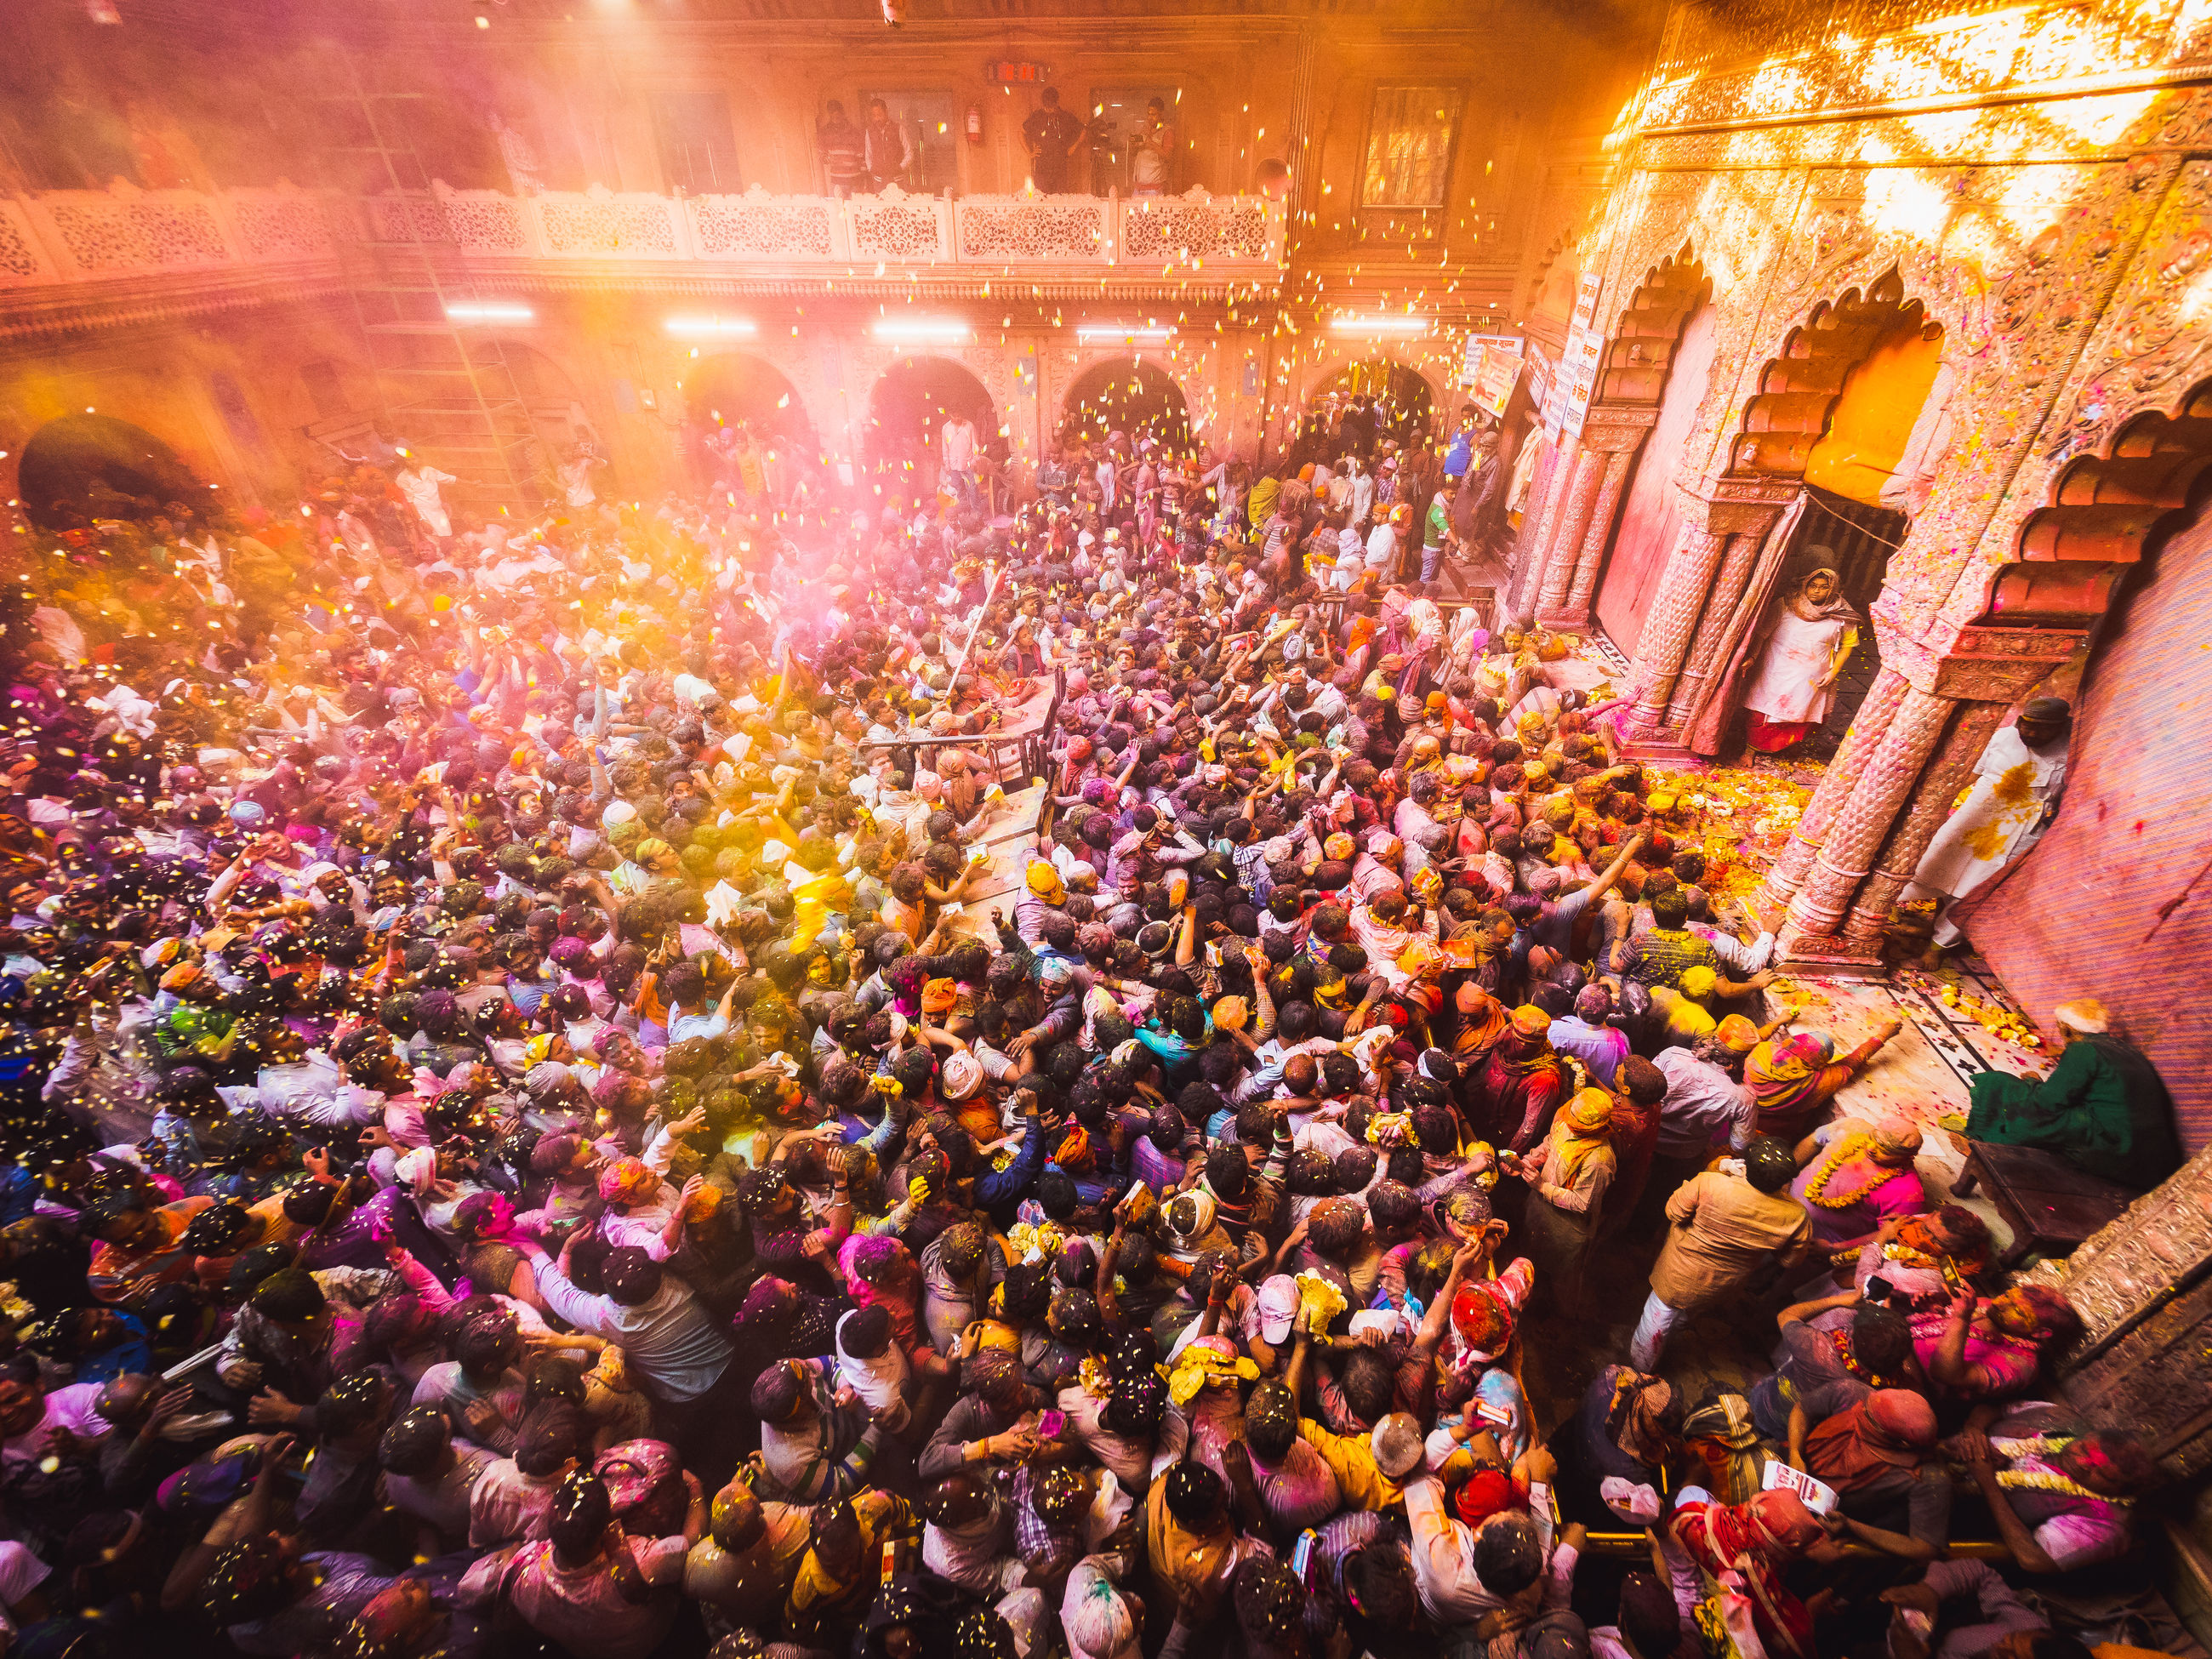 crowd, group of people, large group of people, real people, architecture, built structure, men, illuminated, women, building exterior, adult, lifestyles, leisure activity, outdoors, enjoyment, city, celebration, day, travel destinations, architectural column, excitement